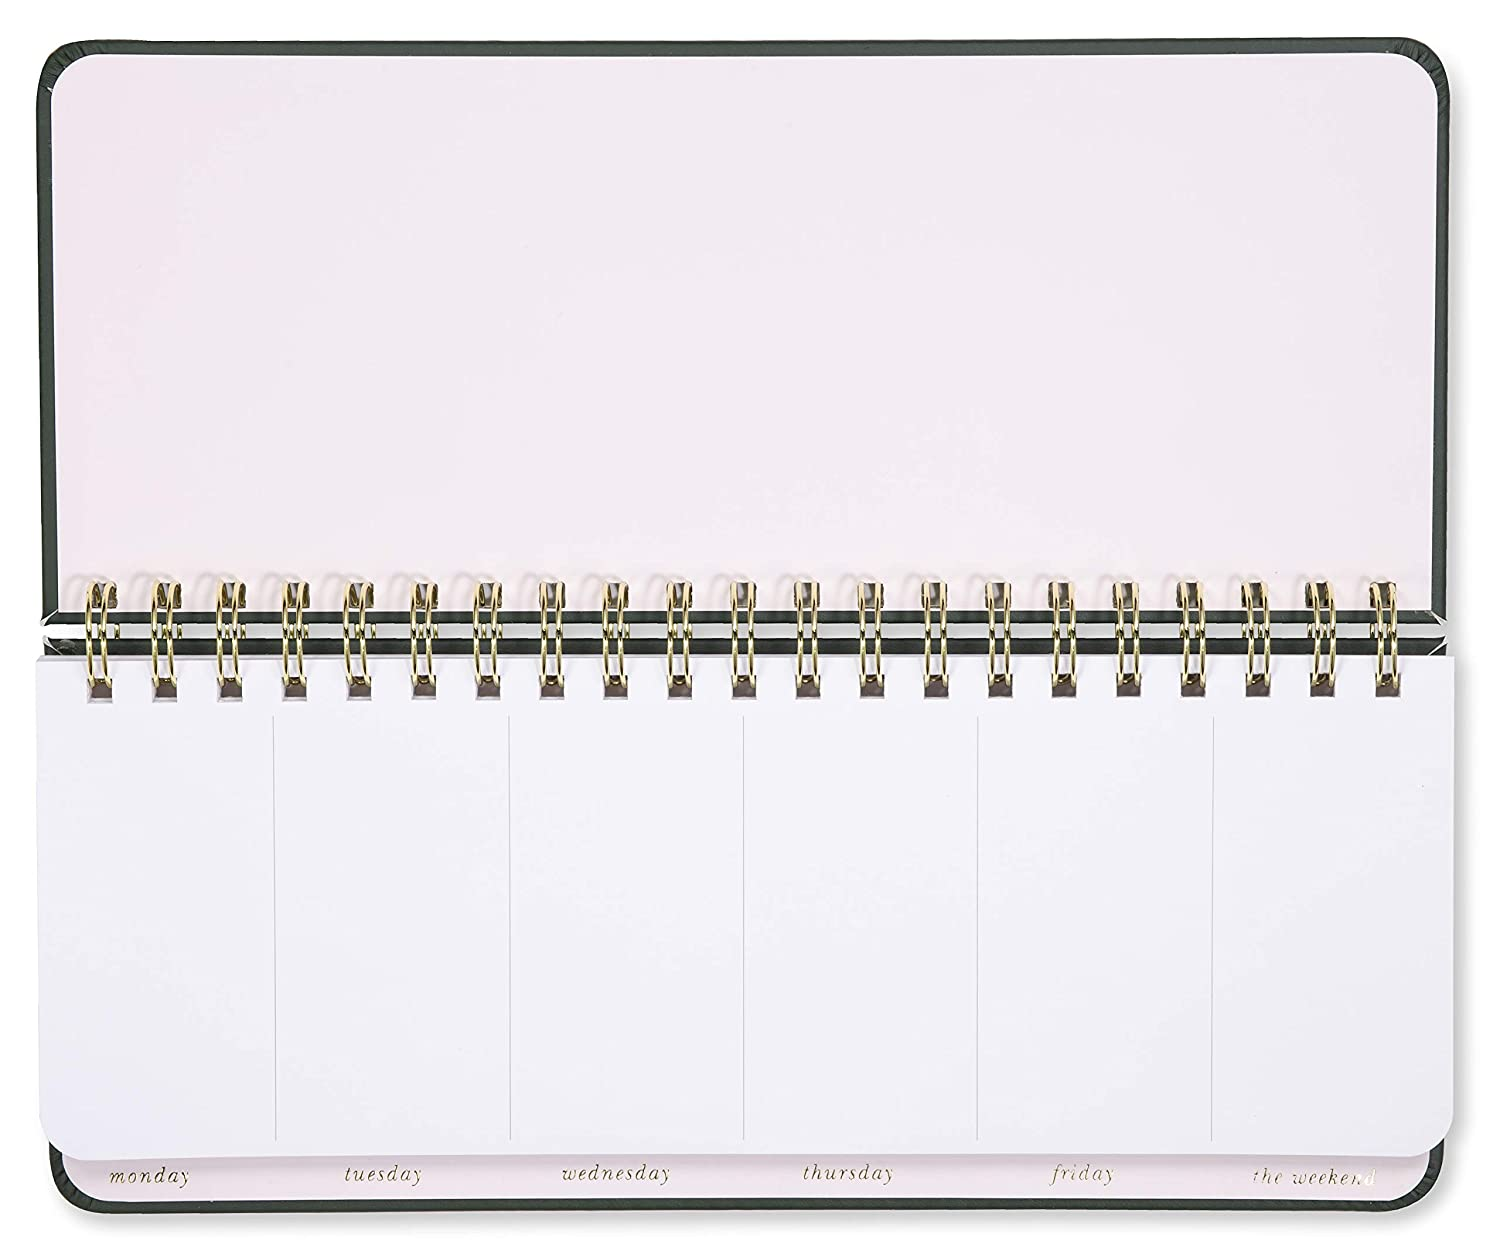 Kate Spade New York Weekly List Pad, Includes 52 Undated Sheets for 1 Year of Planning, What a Week